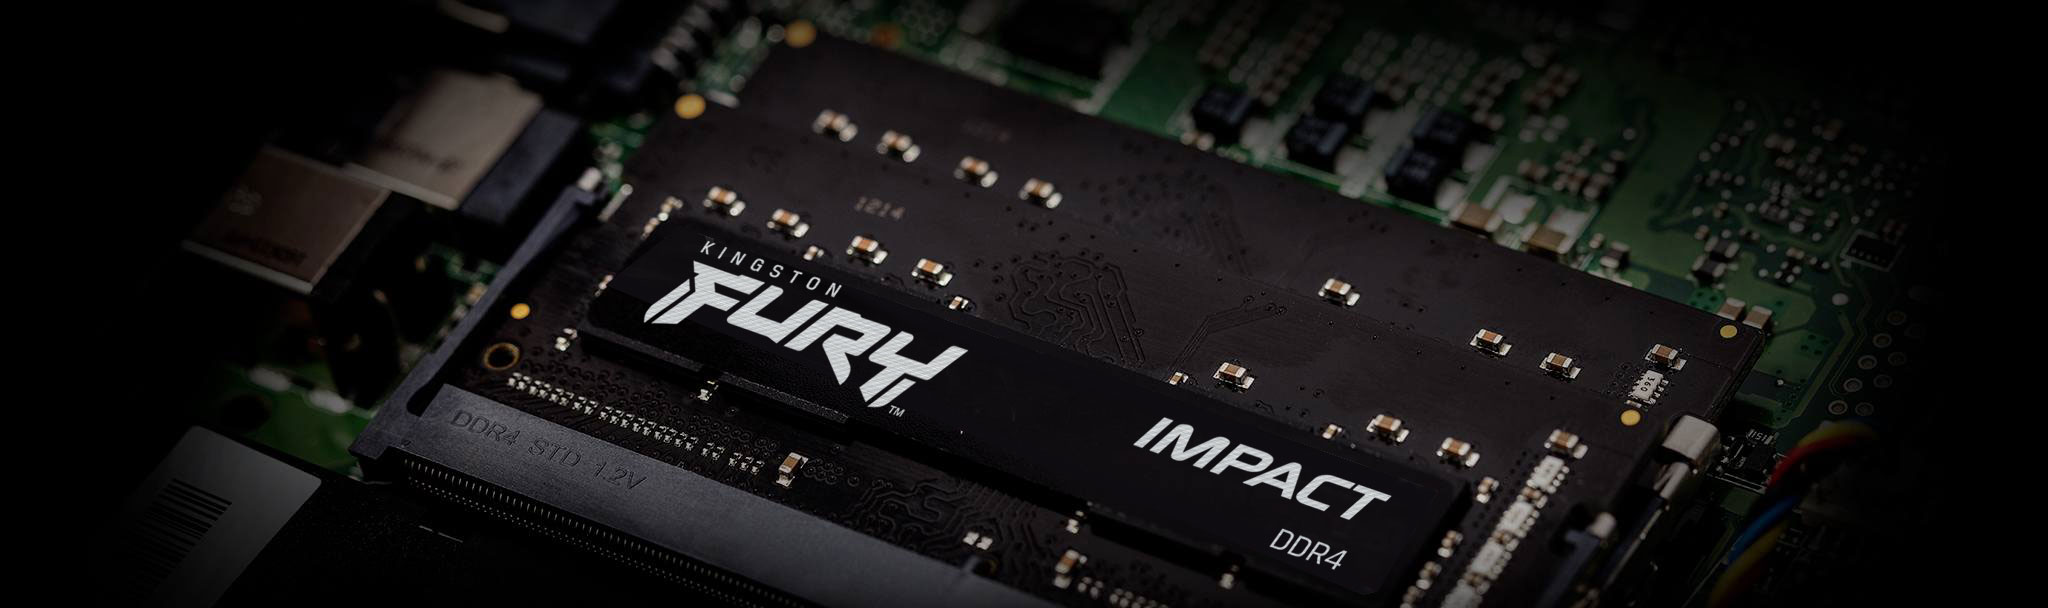 Plug N Play Automatic Overclocking Functionality